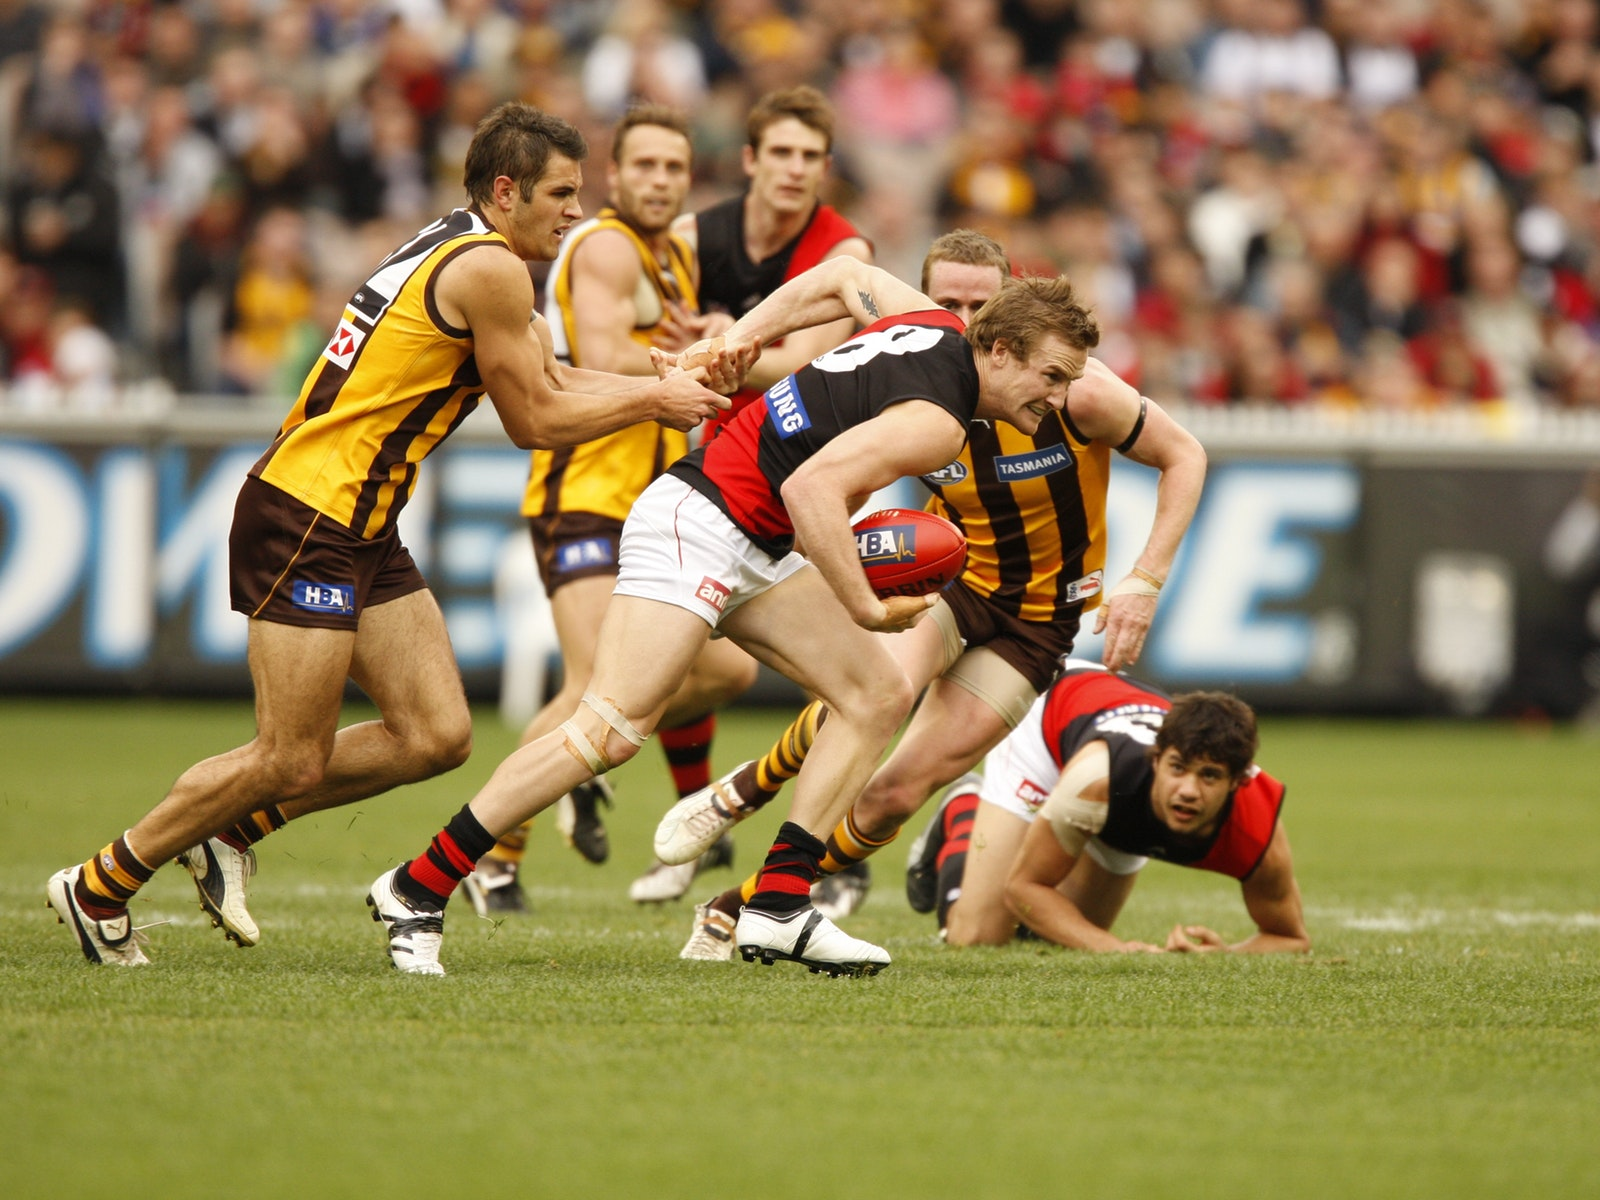 AFL Essendon vs Hawthorn